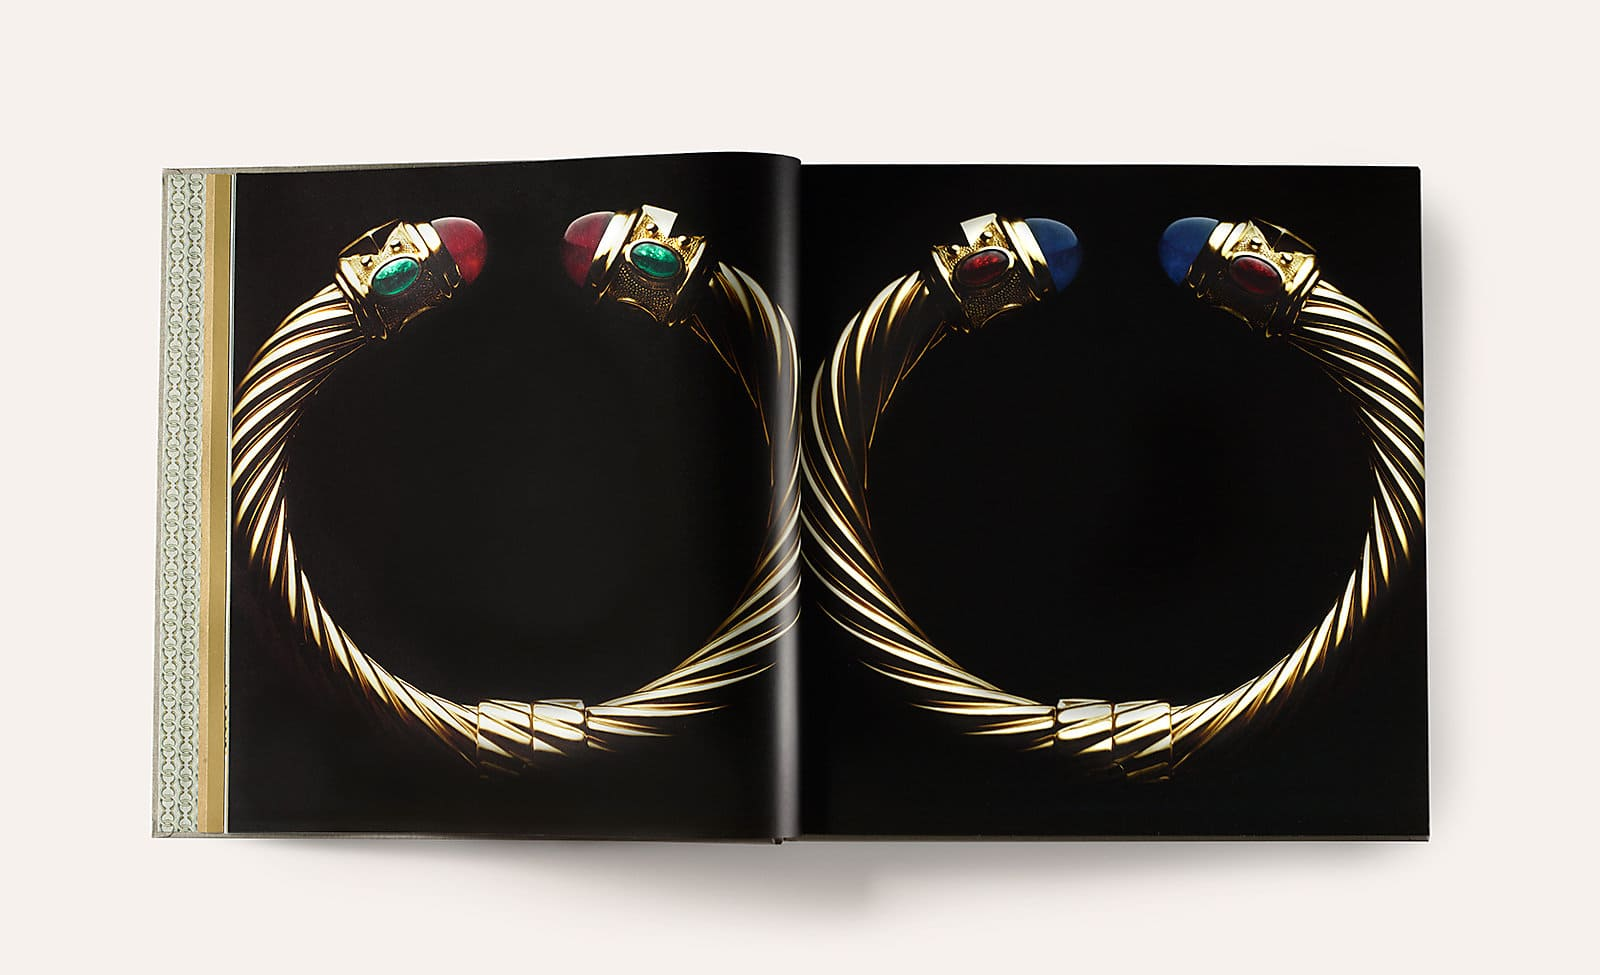 18k gold Cable bracelets with gemstone accents